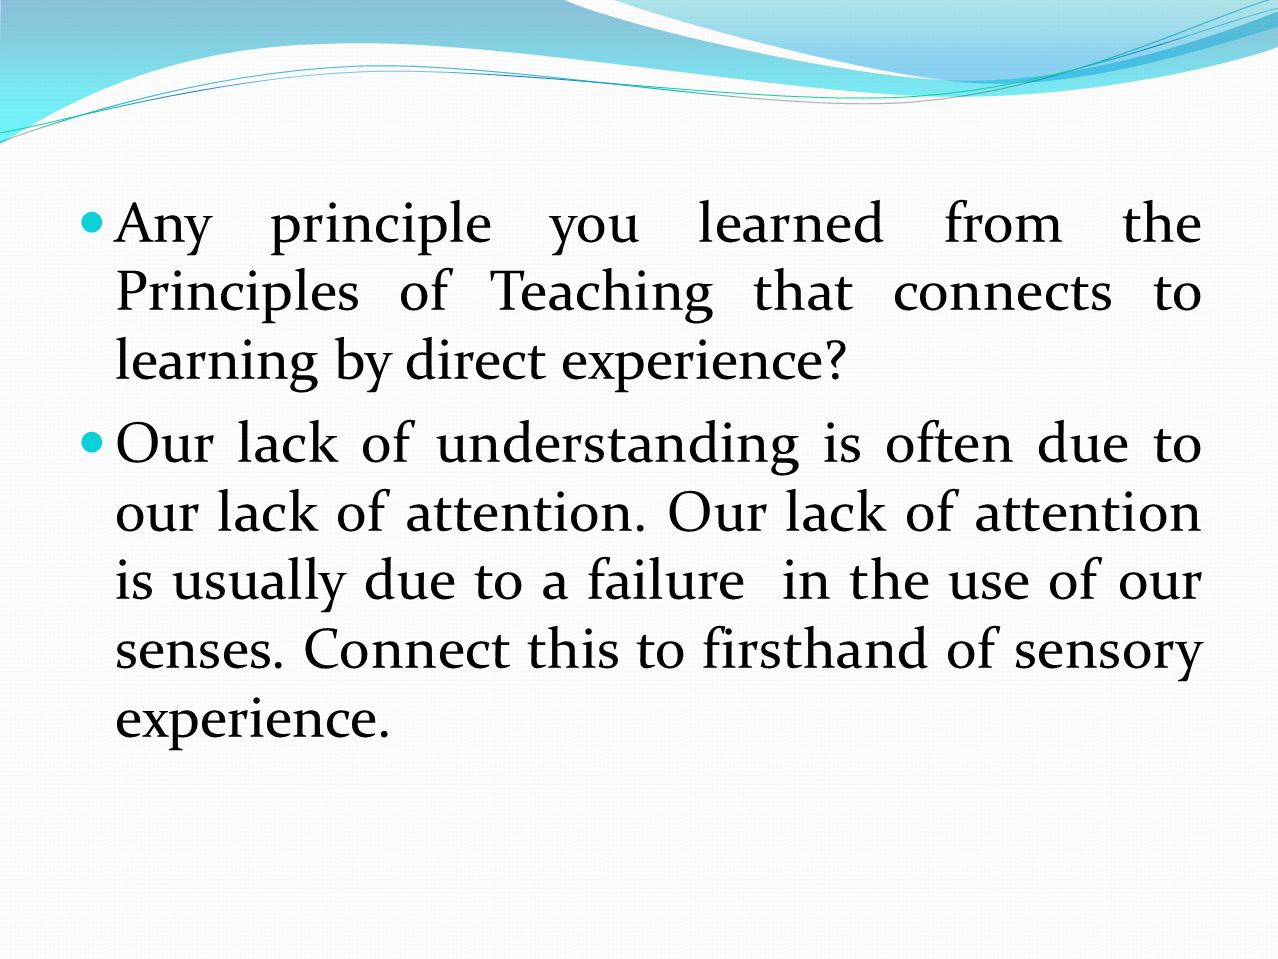 Any principle you learned from the Principles of Teaching that connects to learning by direct experience